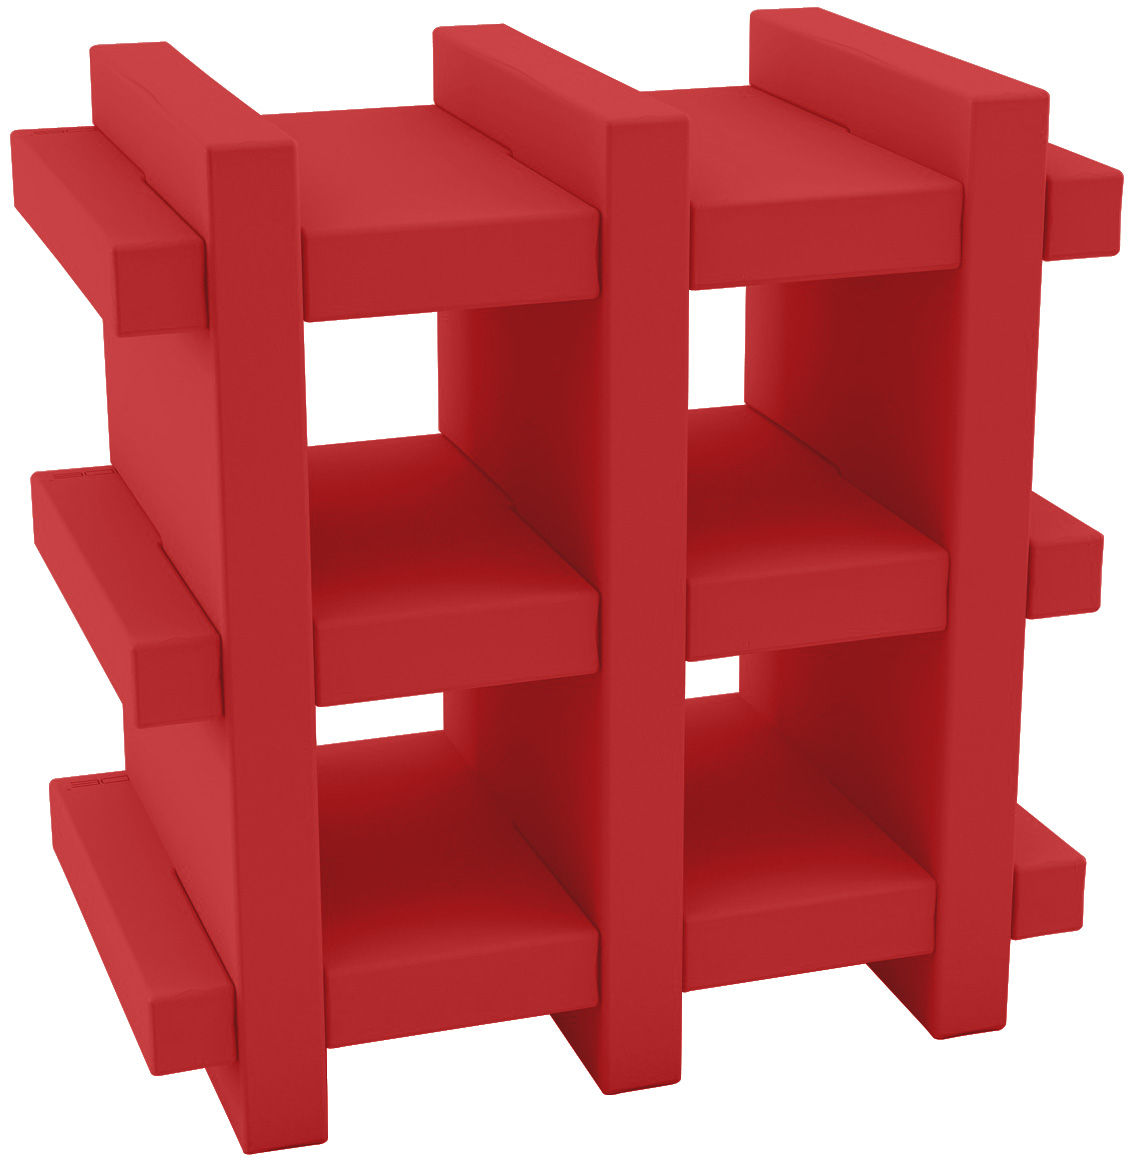 Furniture - Bookcases & Bookshelves - Booky mini Shelf - H 70 cm - W 70 cm by Slide - Red - Polythene